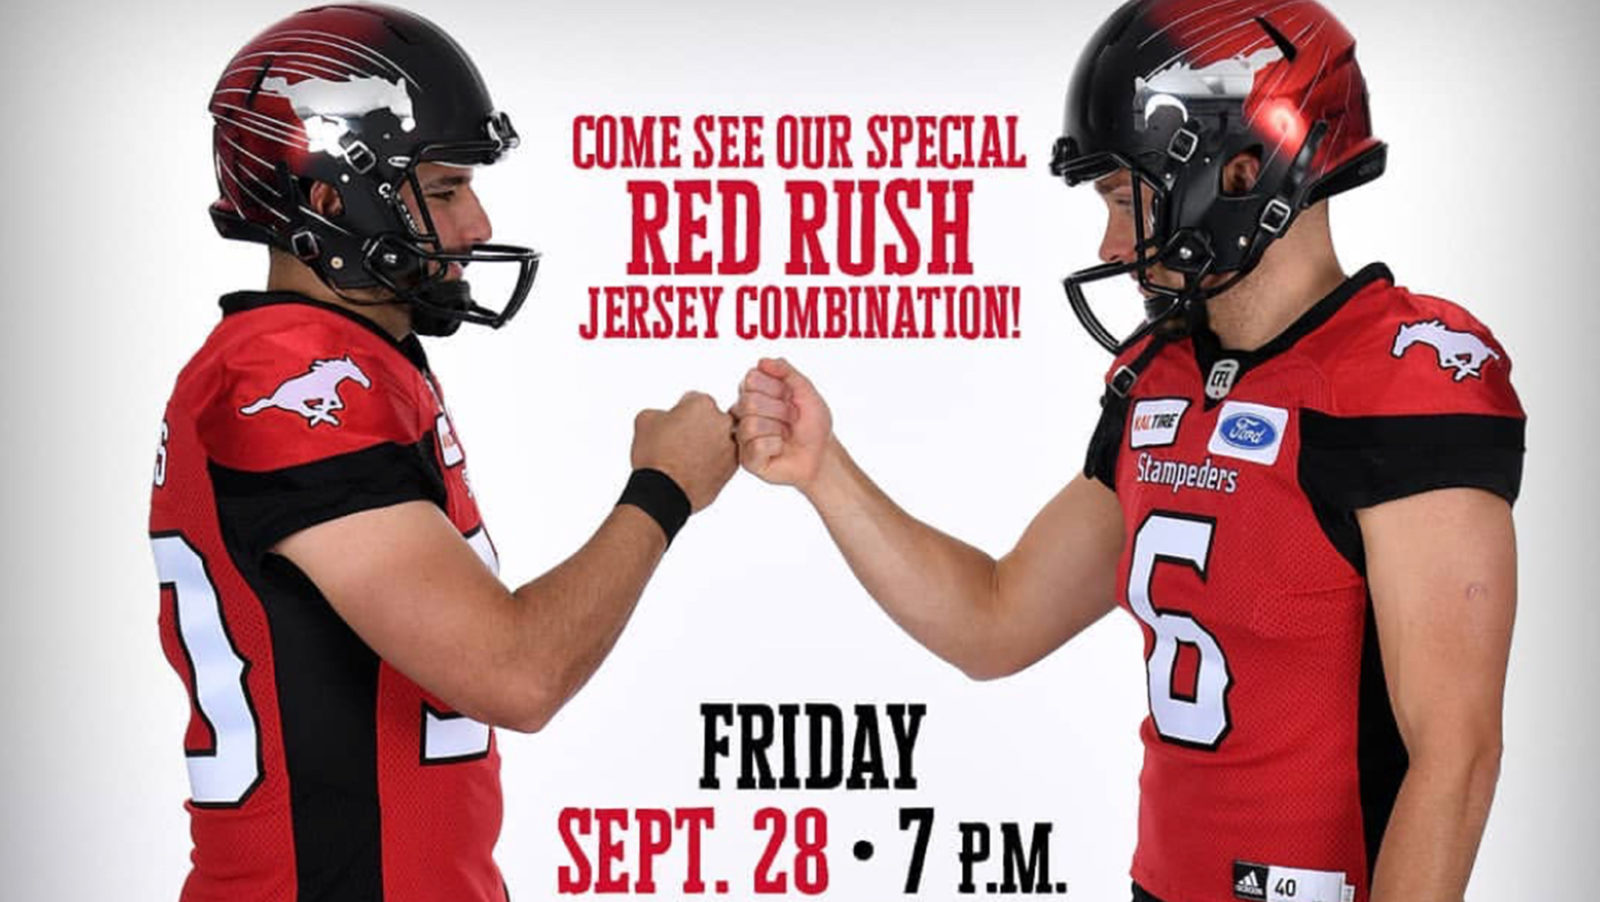 f10e3027f Stamps to roll out new jersey combo for Argos game - CFL.ca